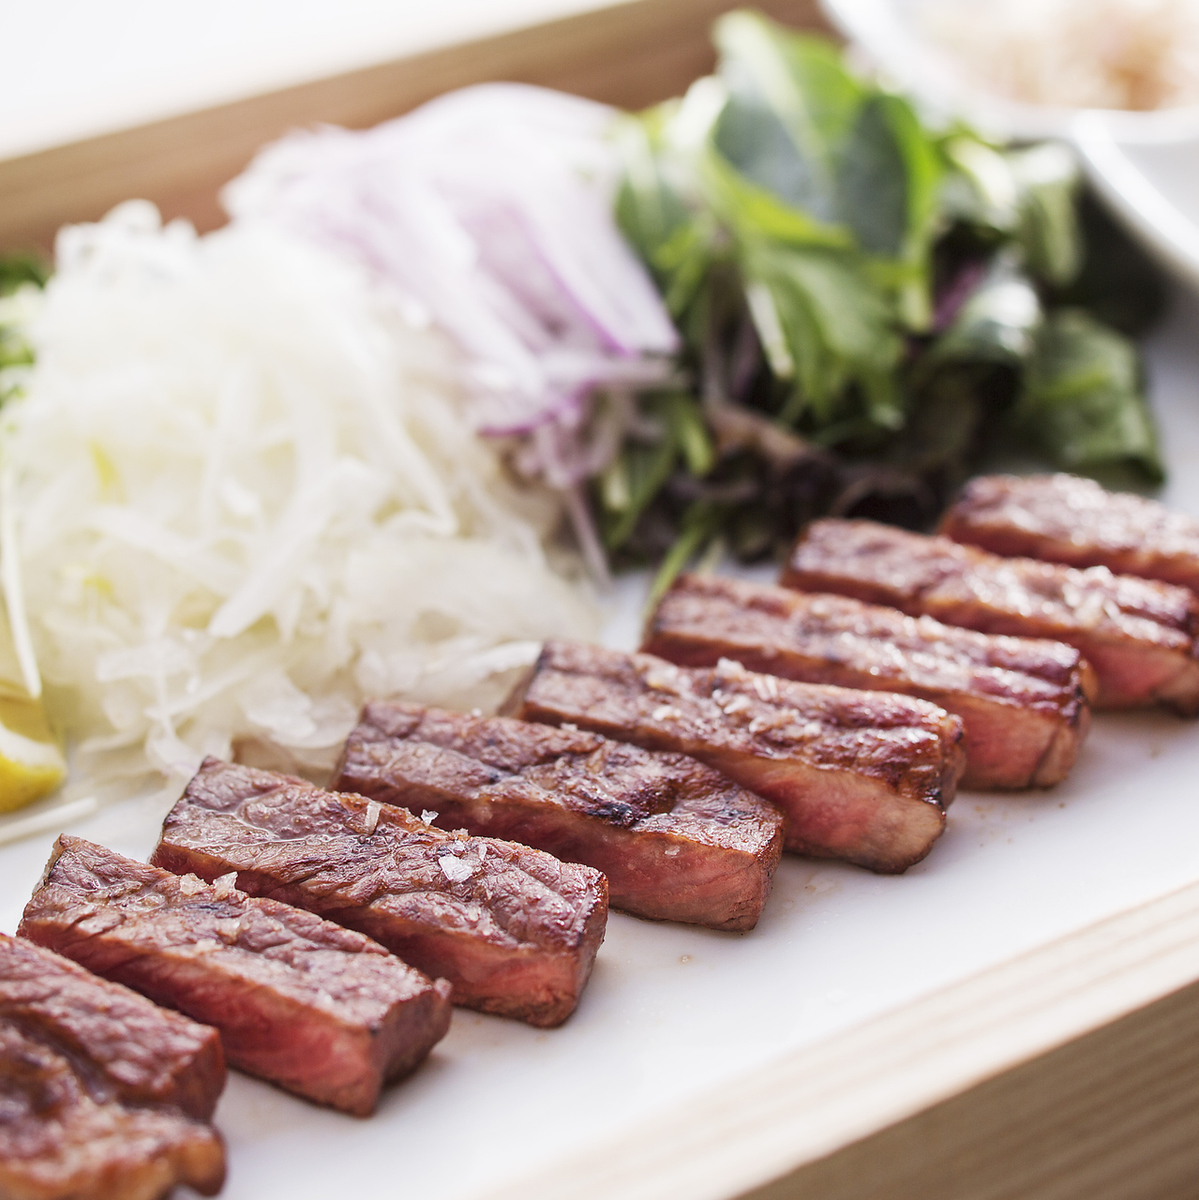 Tosa Wagyu's straw-grilled steak